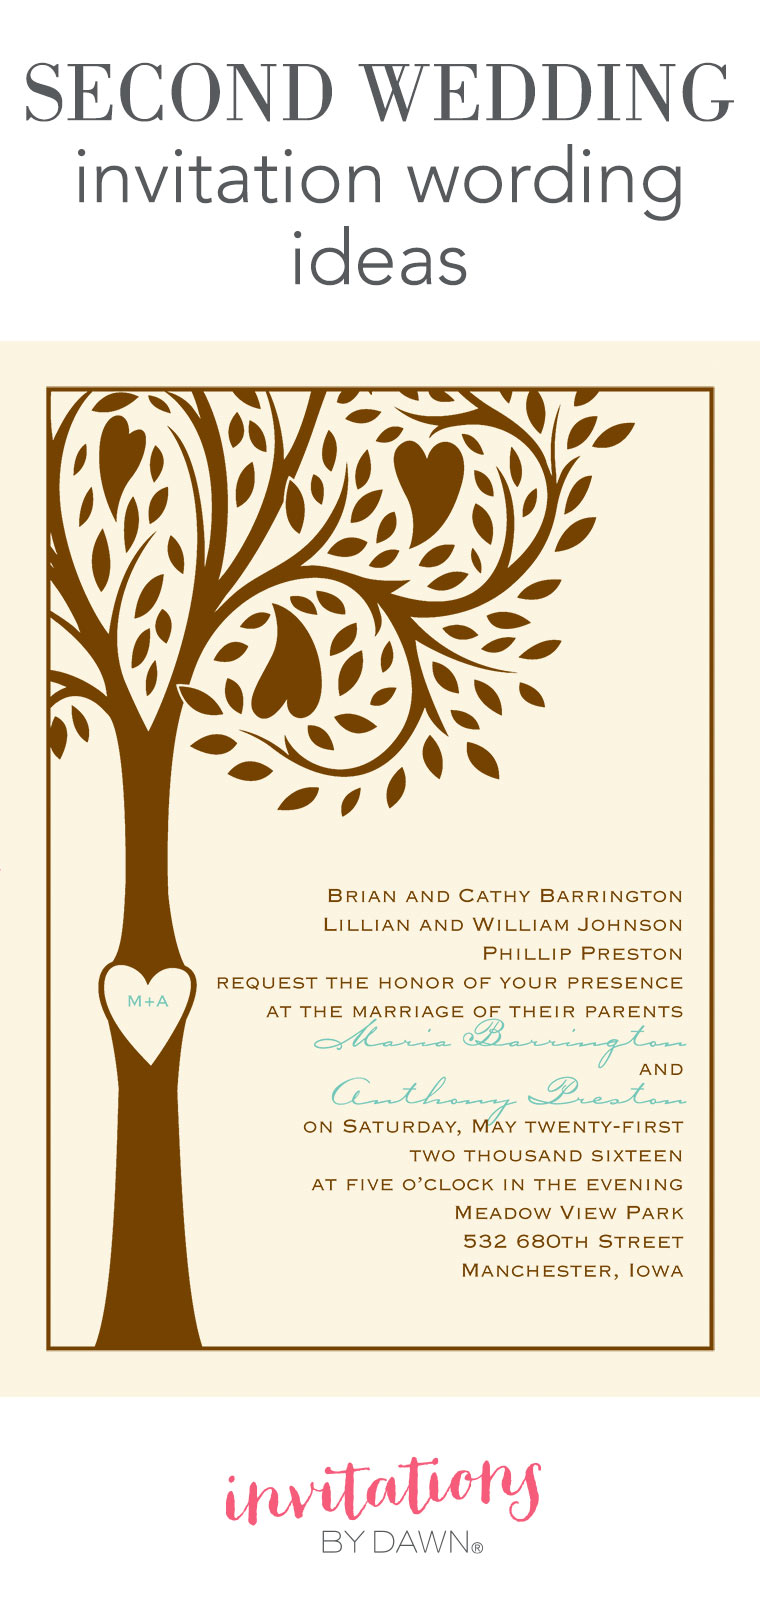 Second wedding invitation wording invitations by dawn second wedding invitation wording stopboris Image collections